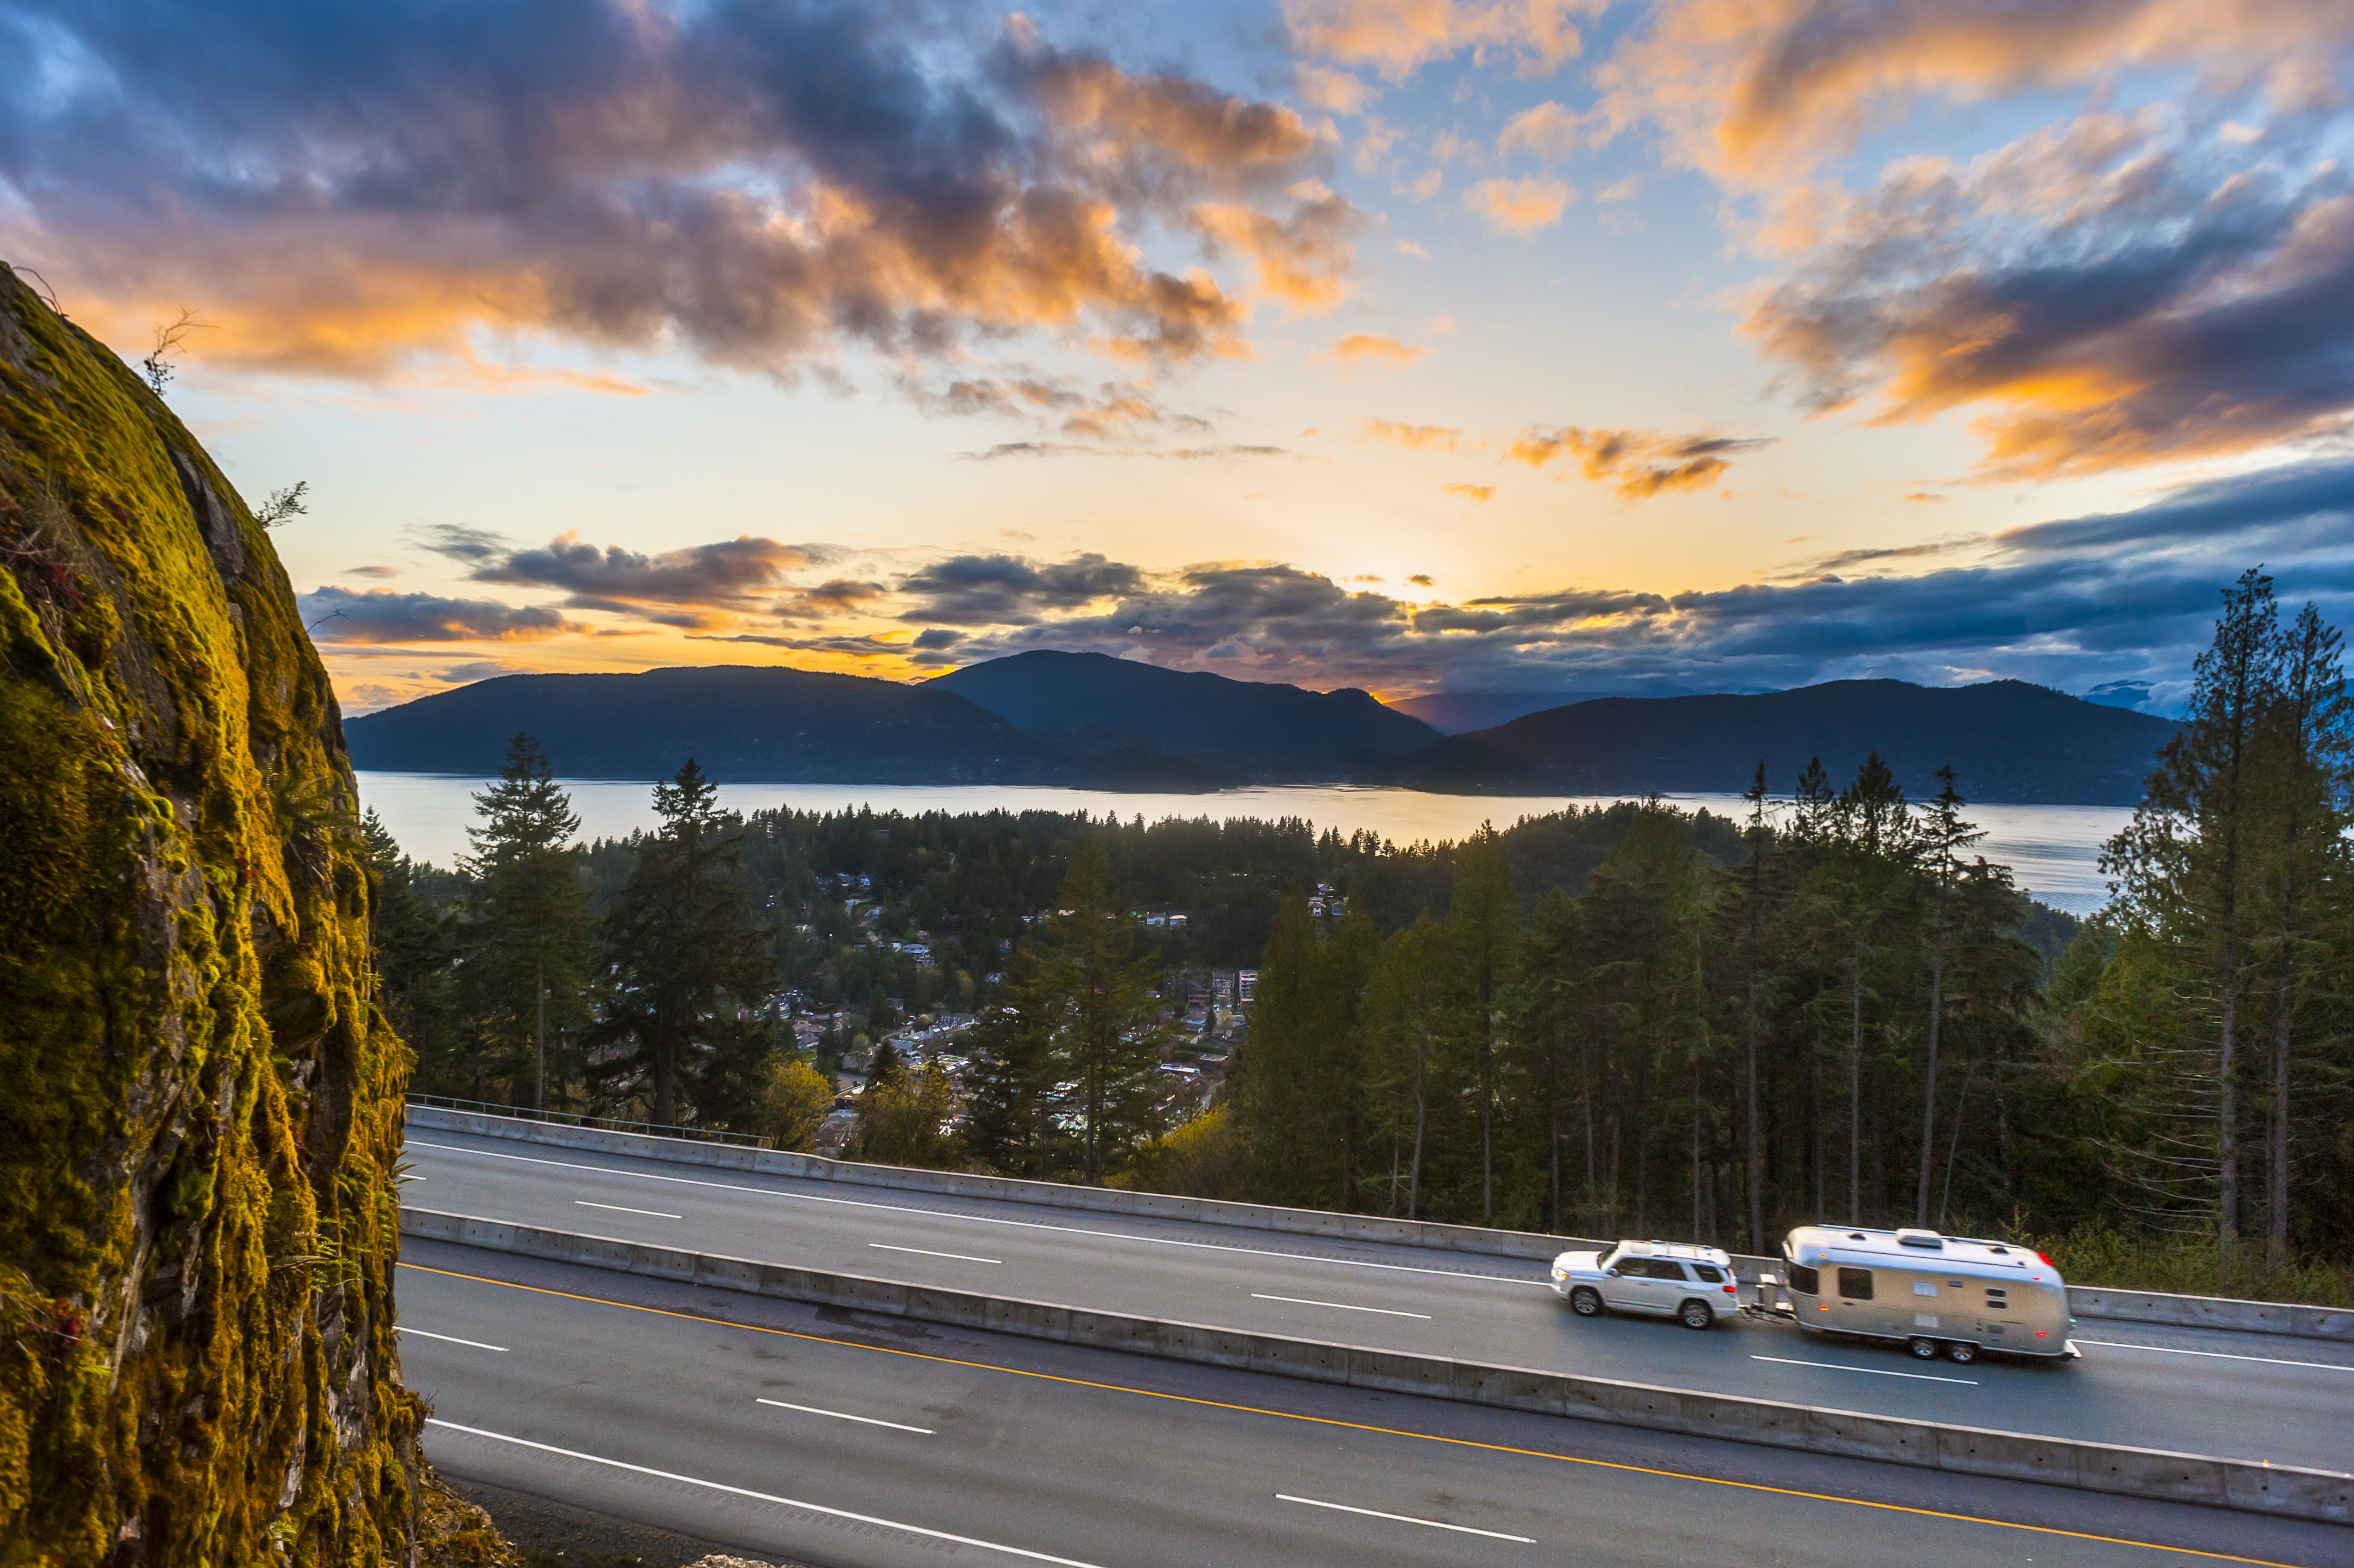 A car pulling a trailer on the sea to sky highway at sunset